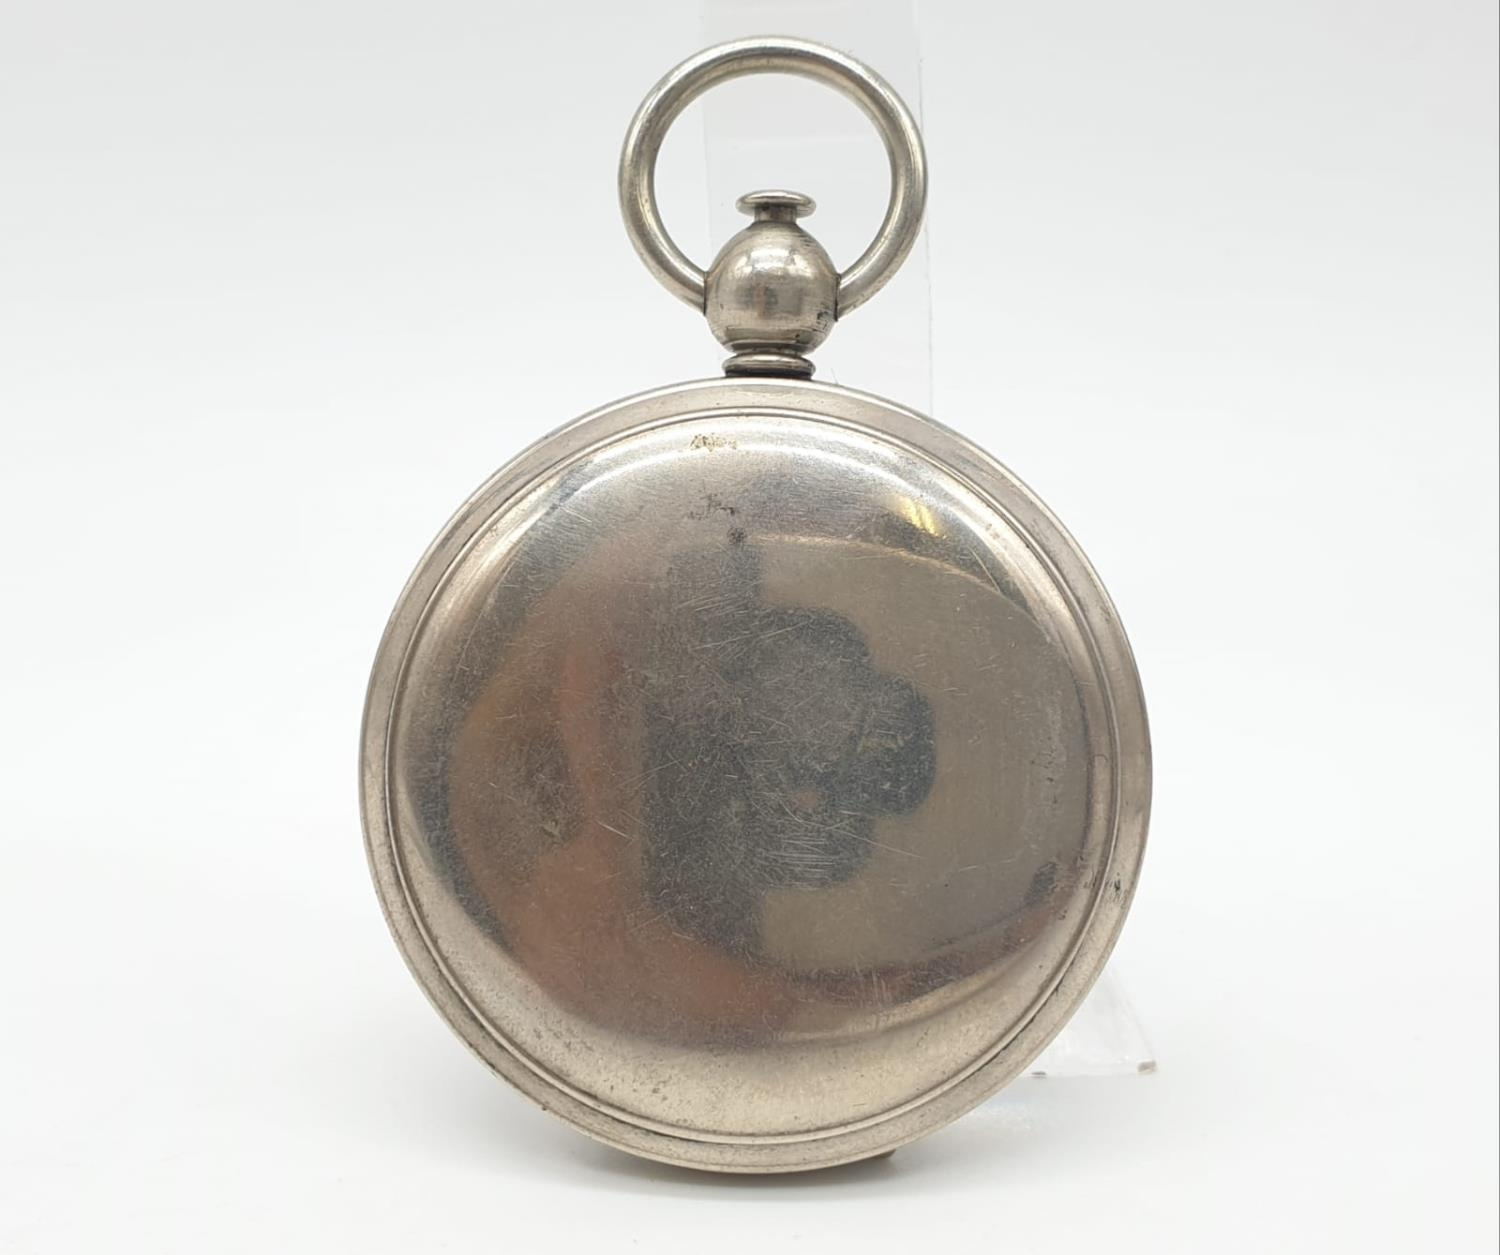 WW1 US Army Pocket Watch Compass circa1917. Maker: Wittnauer. - Image 4 of 5